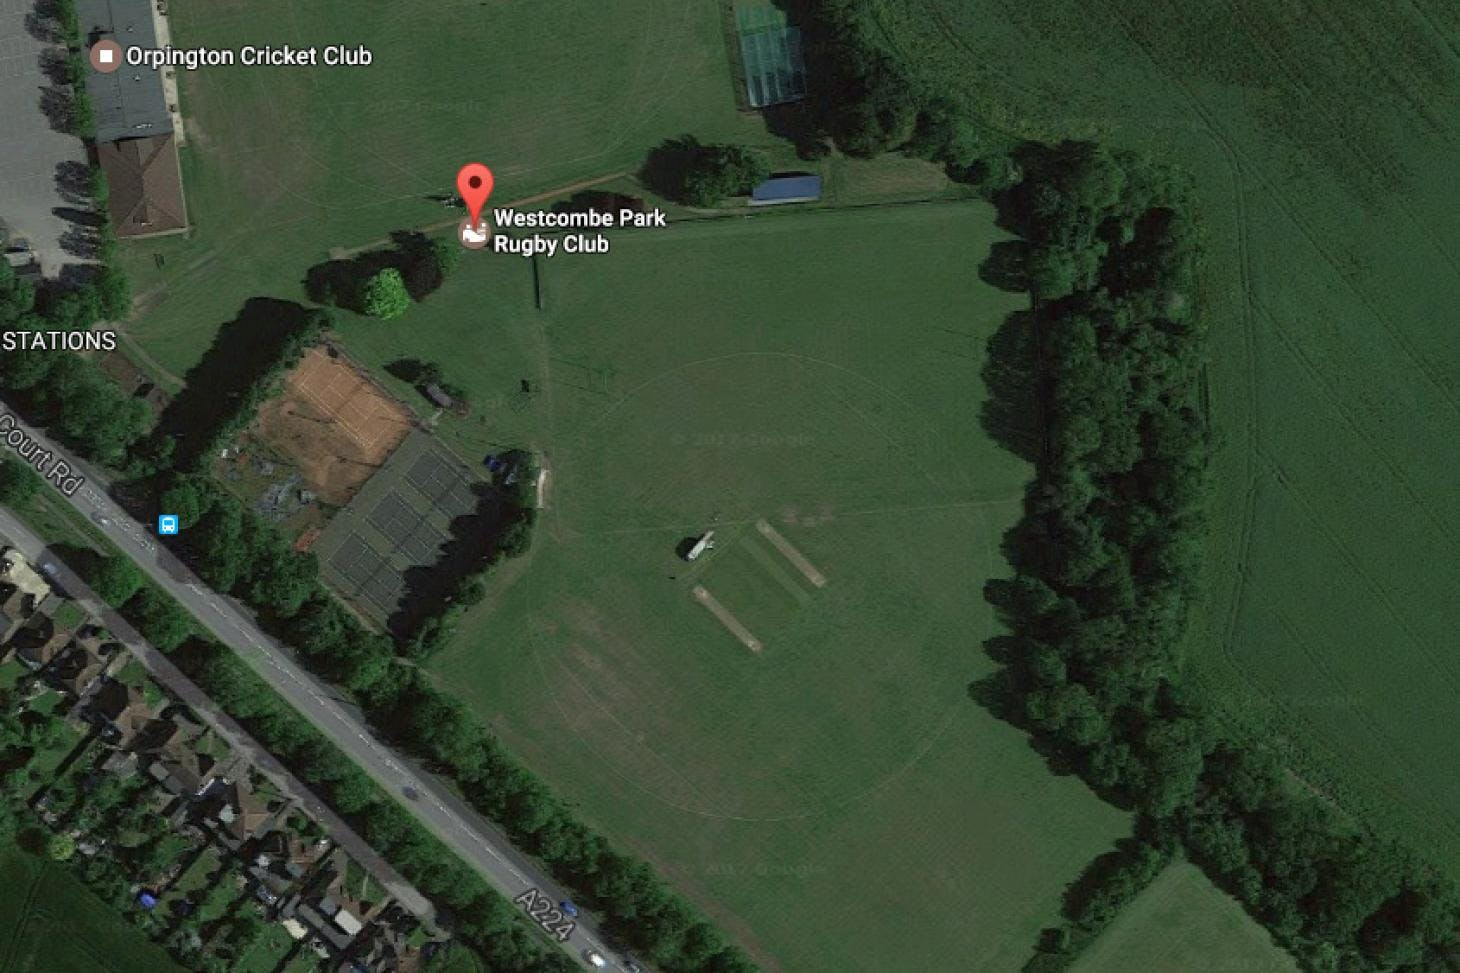 Westcombe Park RFC Union | Grass rugby pitch